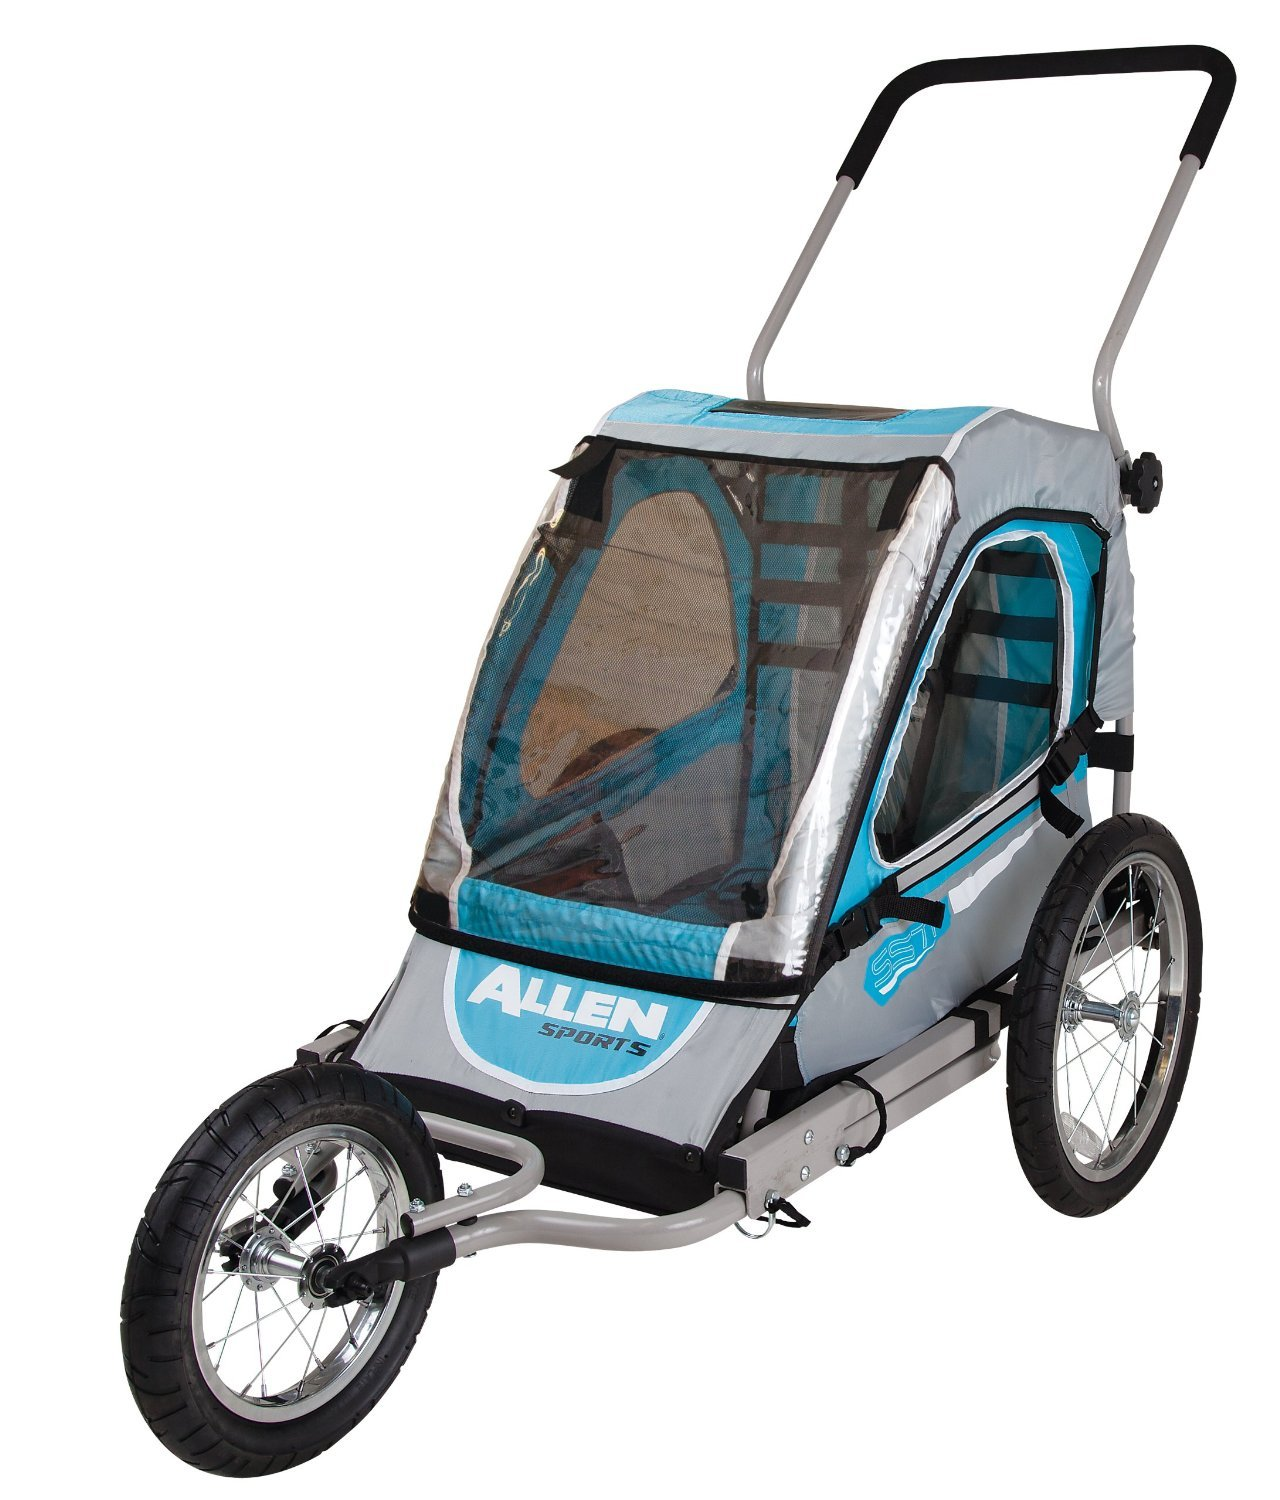 Allen Sports Deluxe Steel Child Trailer - Kid Carrier for Bikes